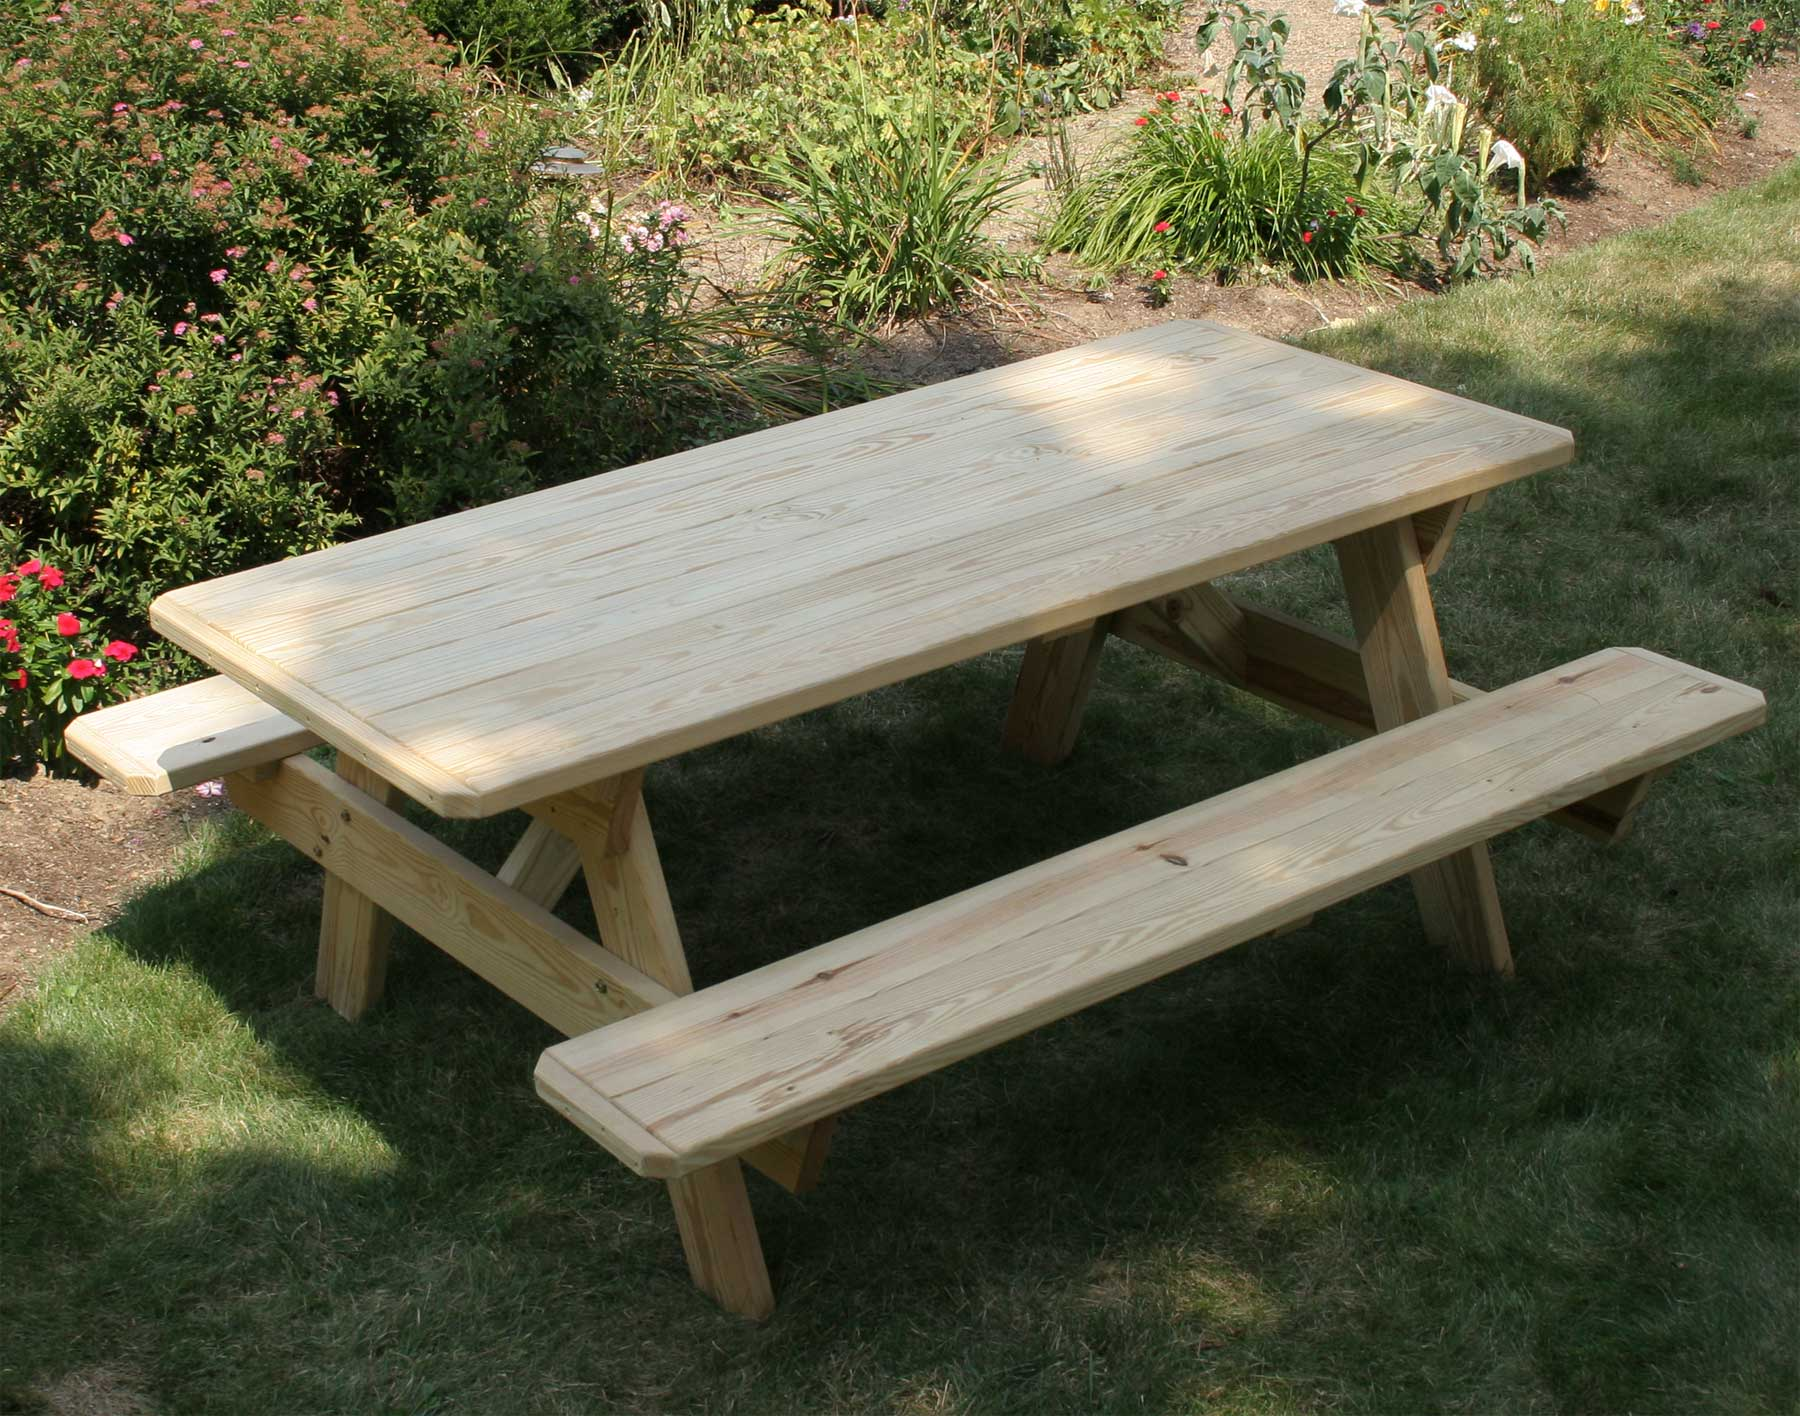 Fifthroomu0027s Treated Pine Picnic Table With Attached Benches.